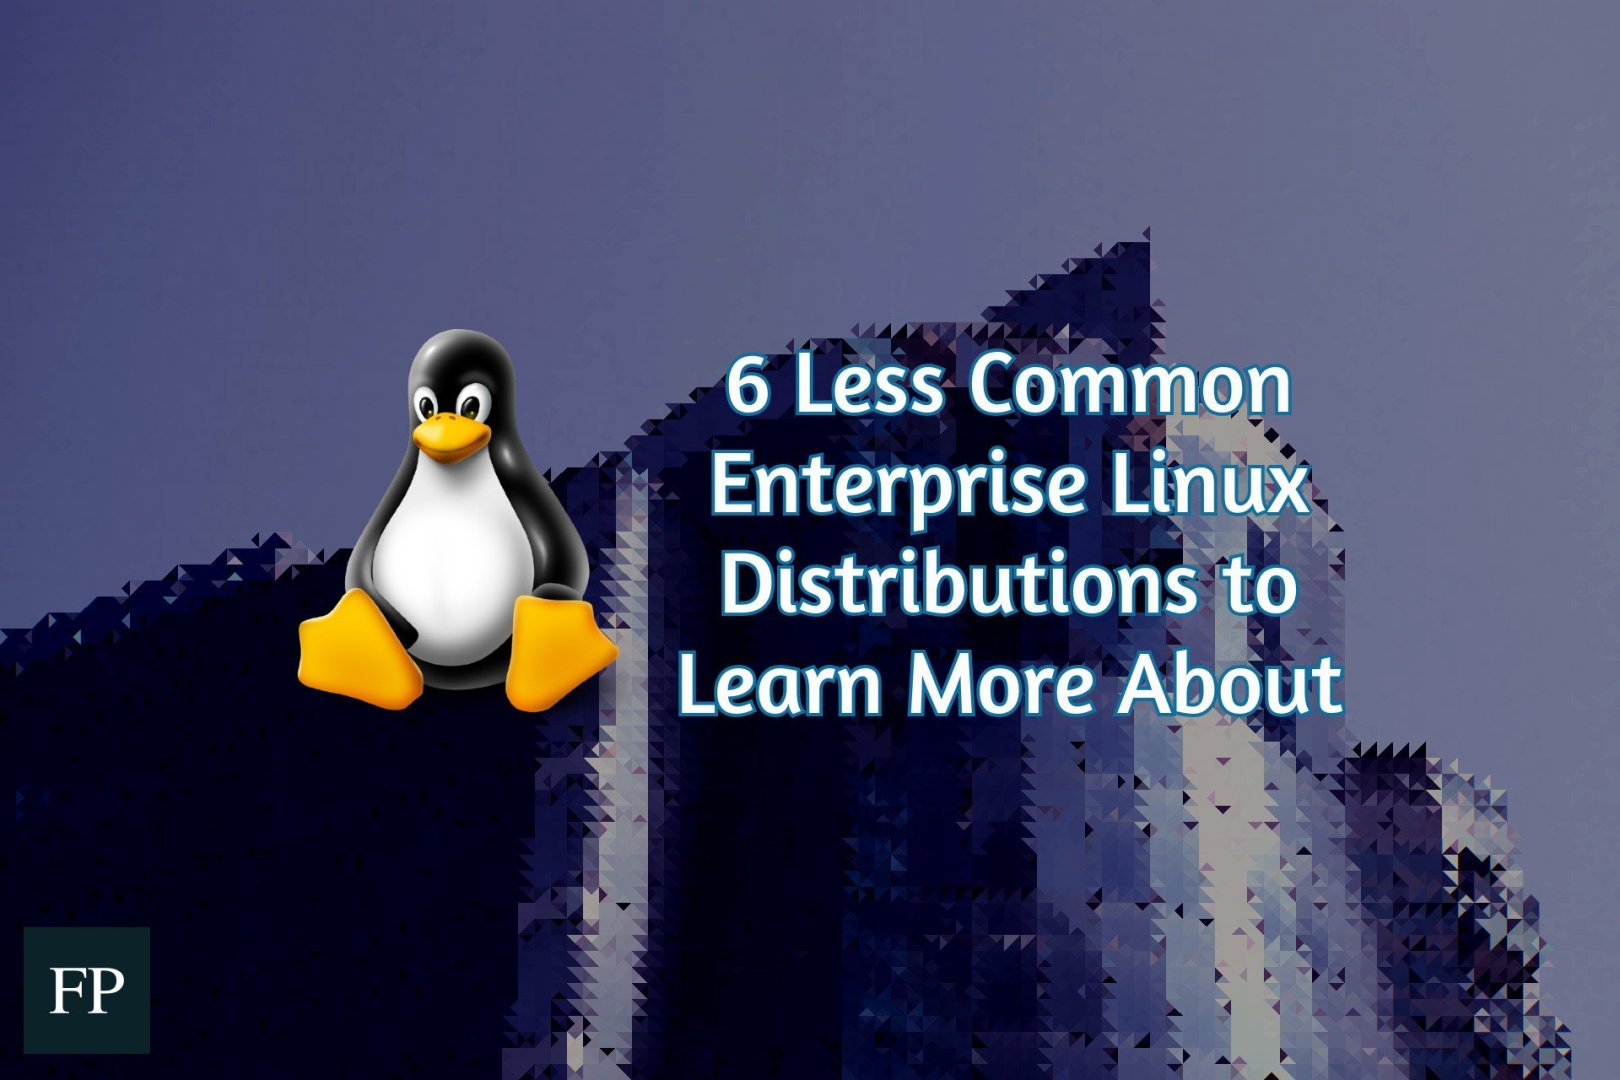 56 enterprise linux